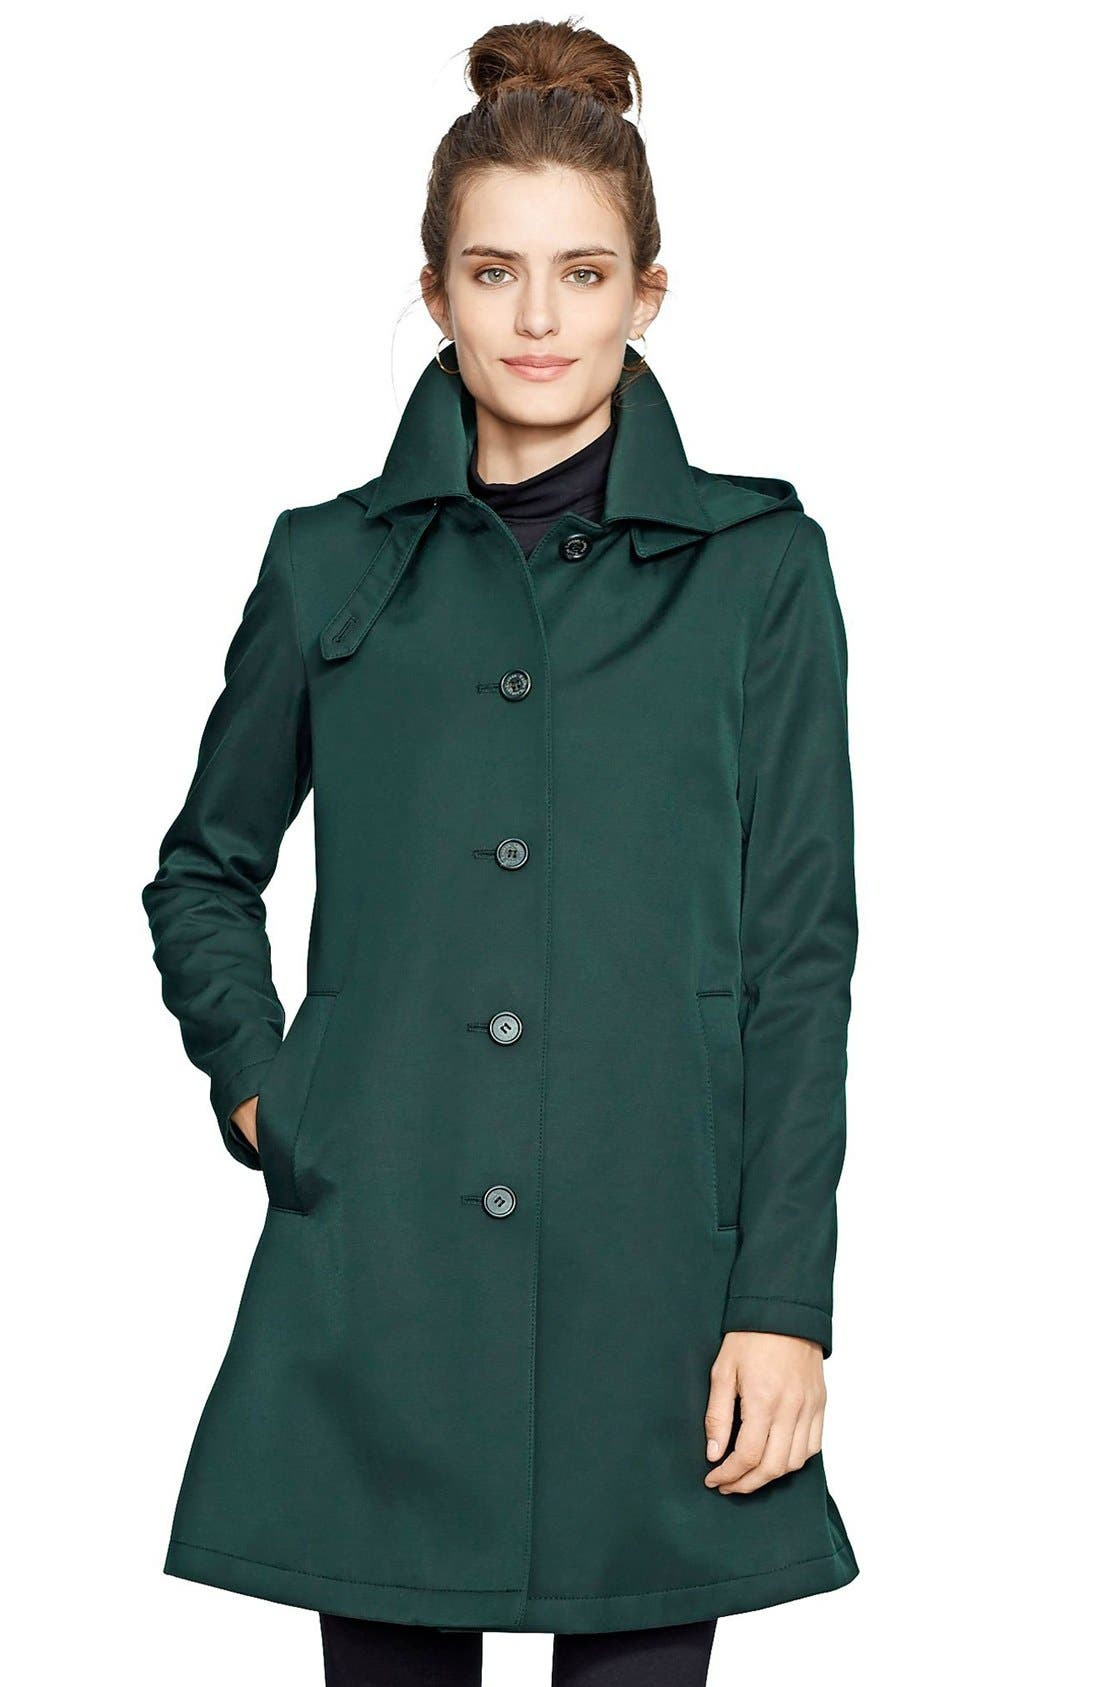 Main Image - Lauren Ralph Lauren A-Line Raincoat (Regular & Petite) (Nordstrom Exclusive)